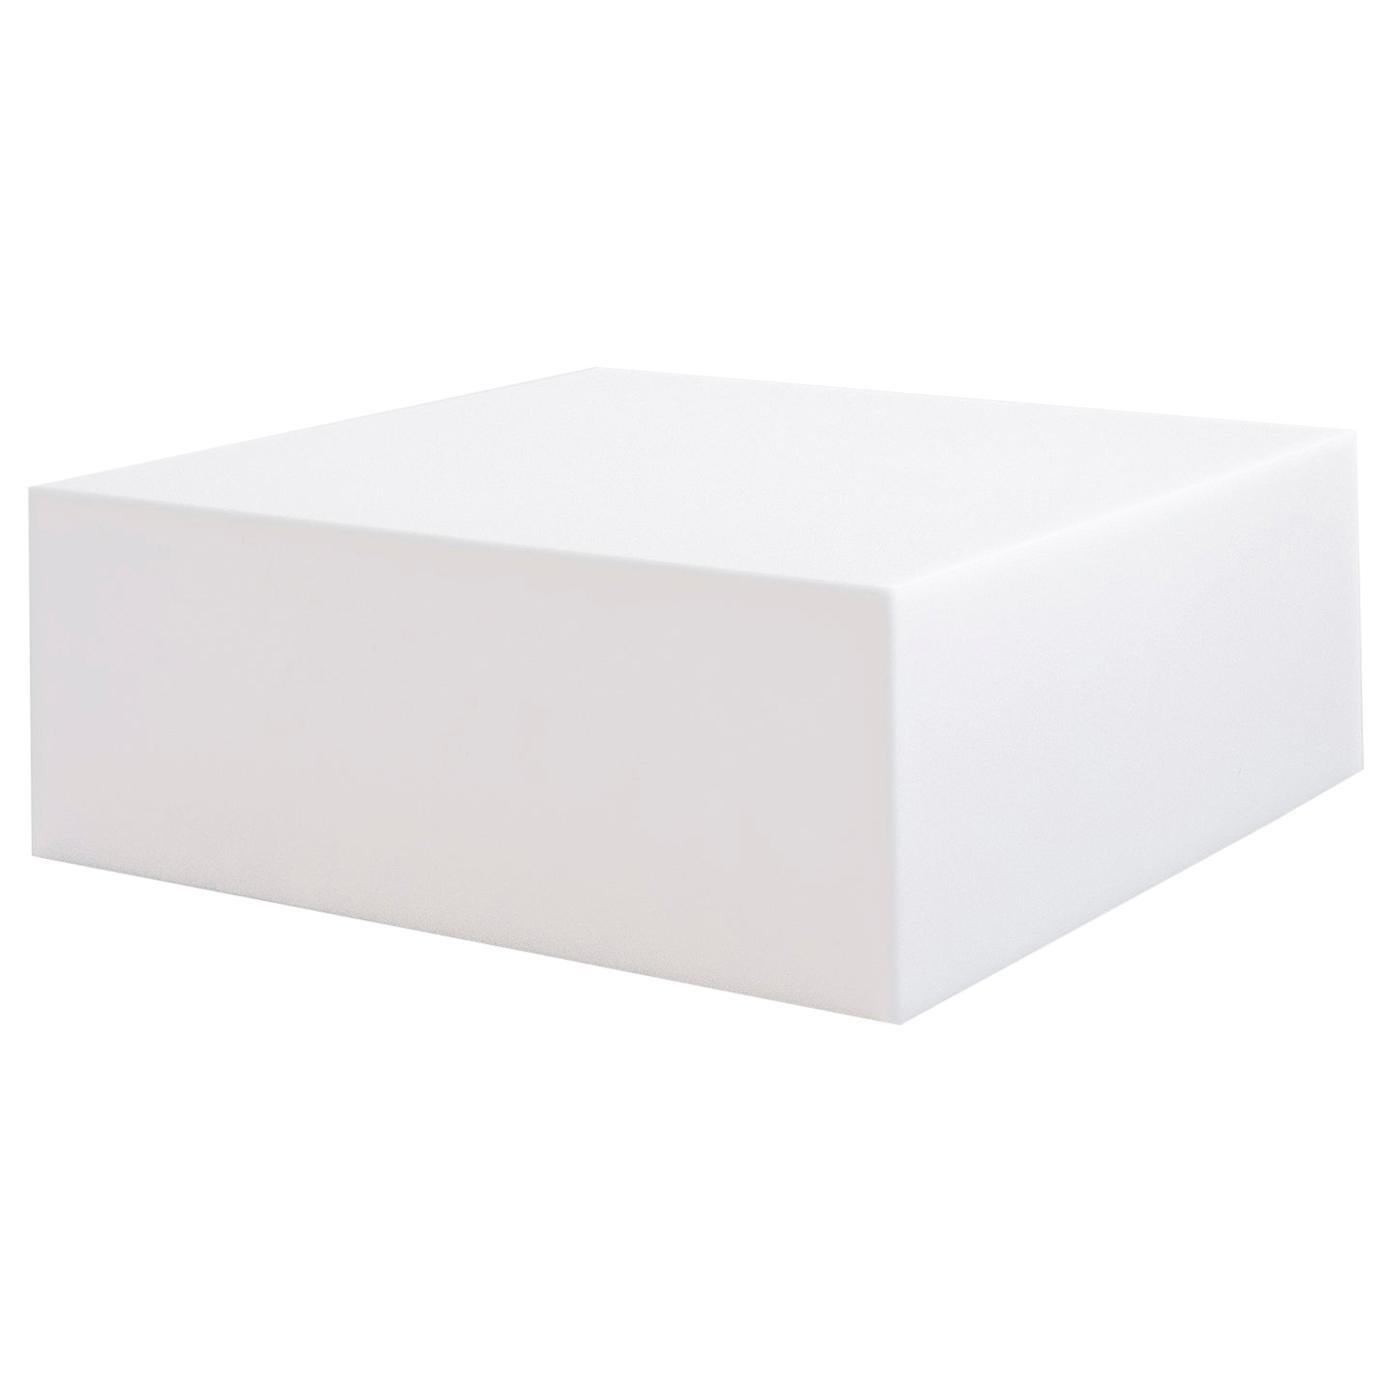 Sabine Marcelis Contemporary Coffee table, Cast Resin White, Rotterdam, 2020